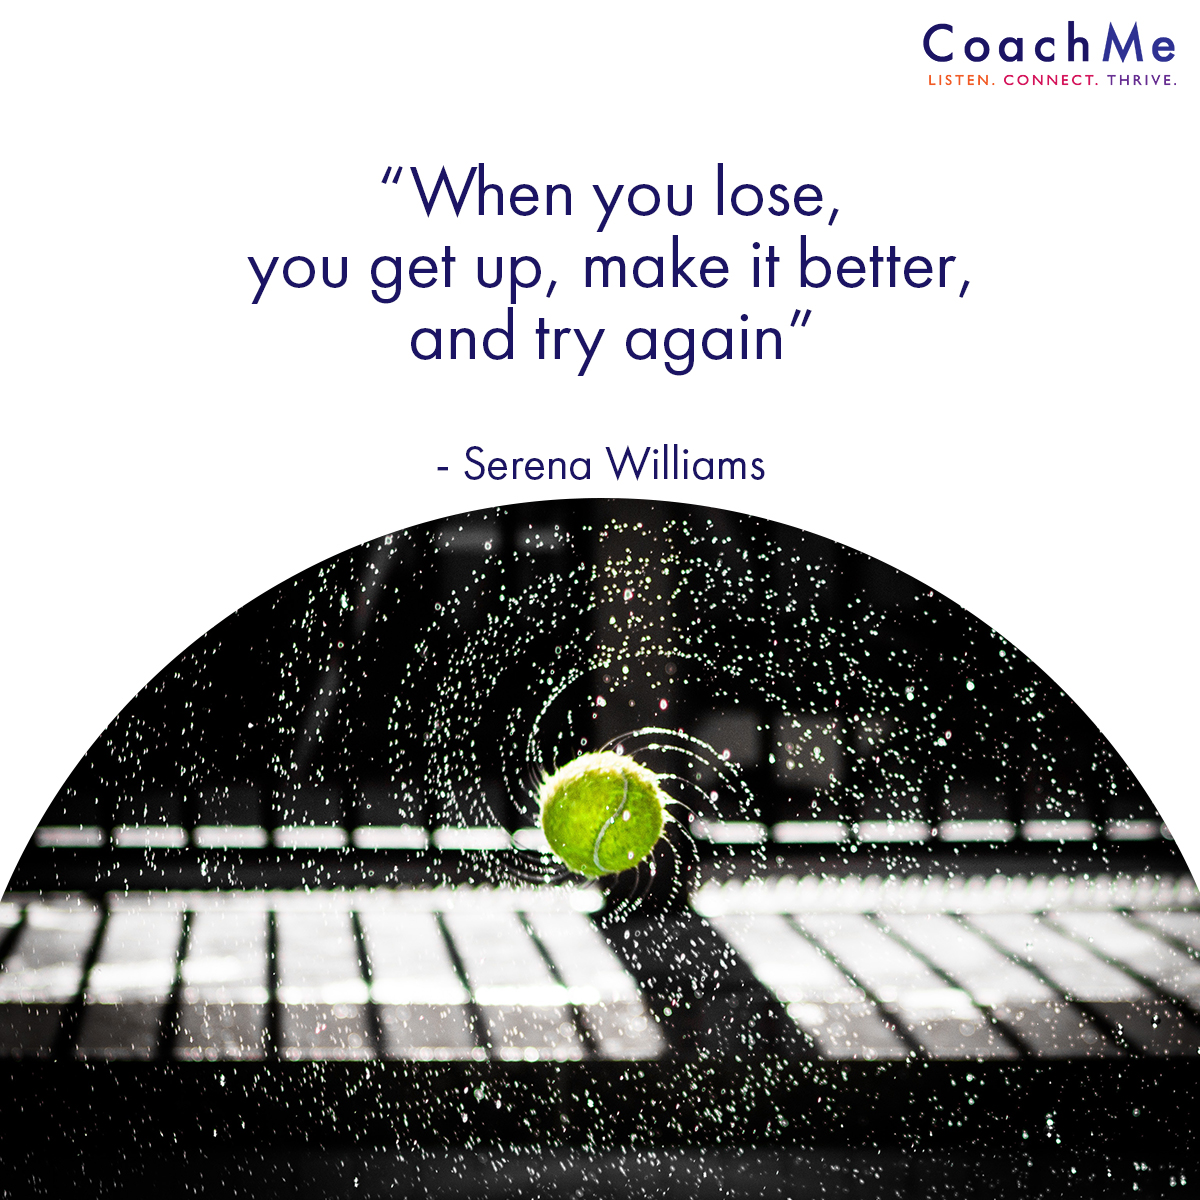 Coaching Quotations - Try Again - Serena Williams - CoachMe Vancouver